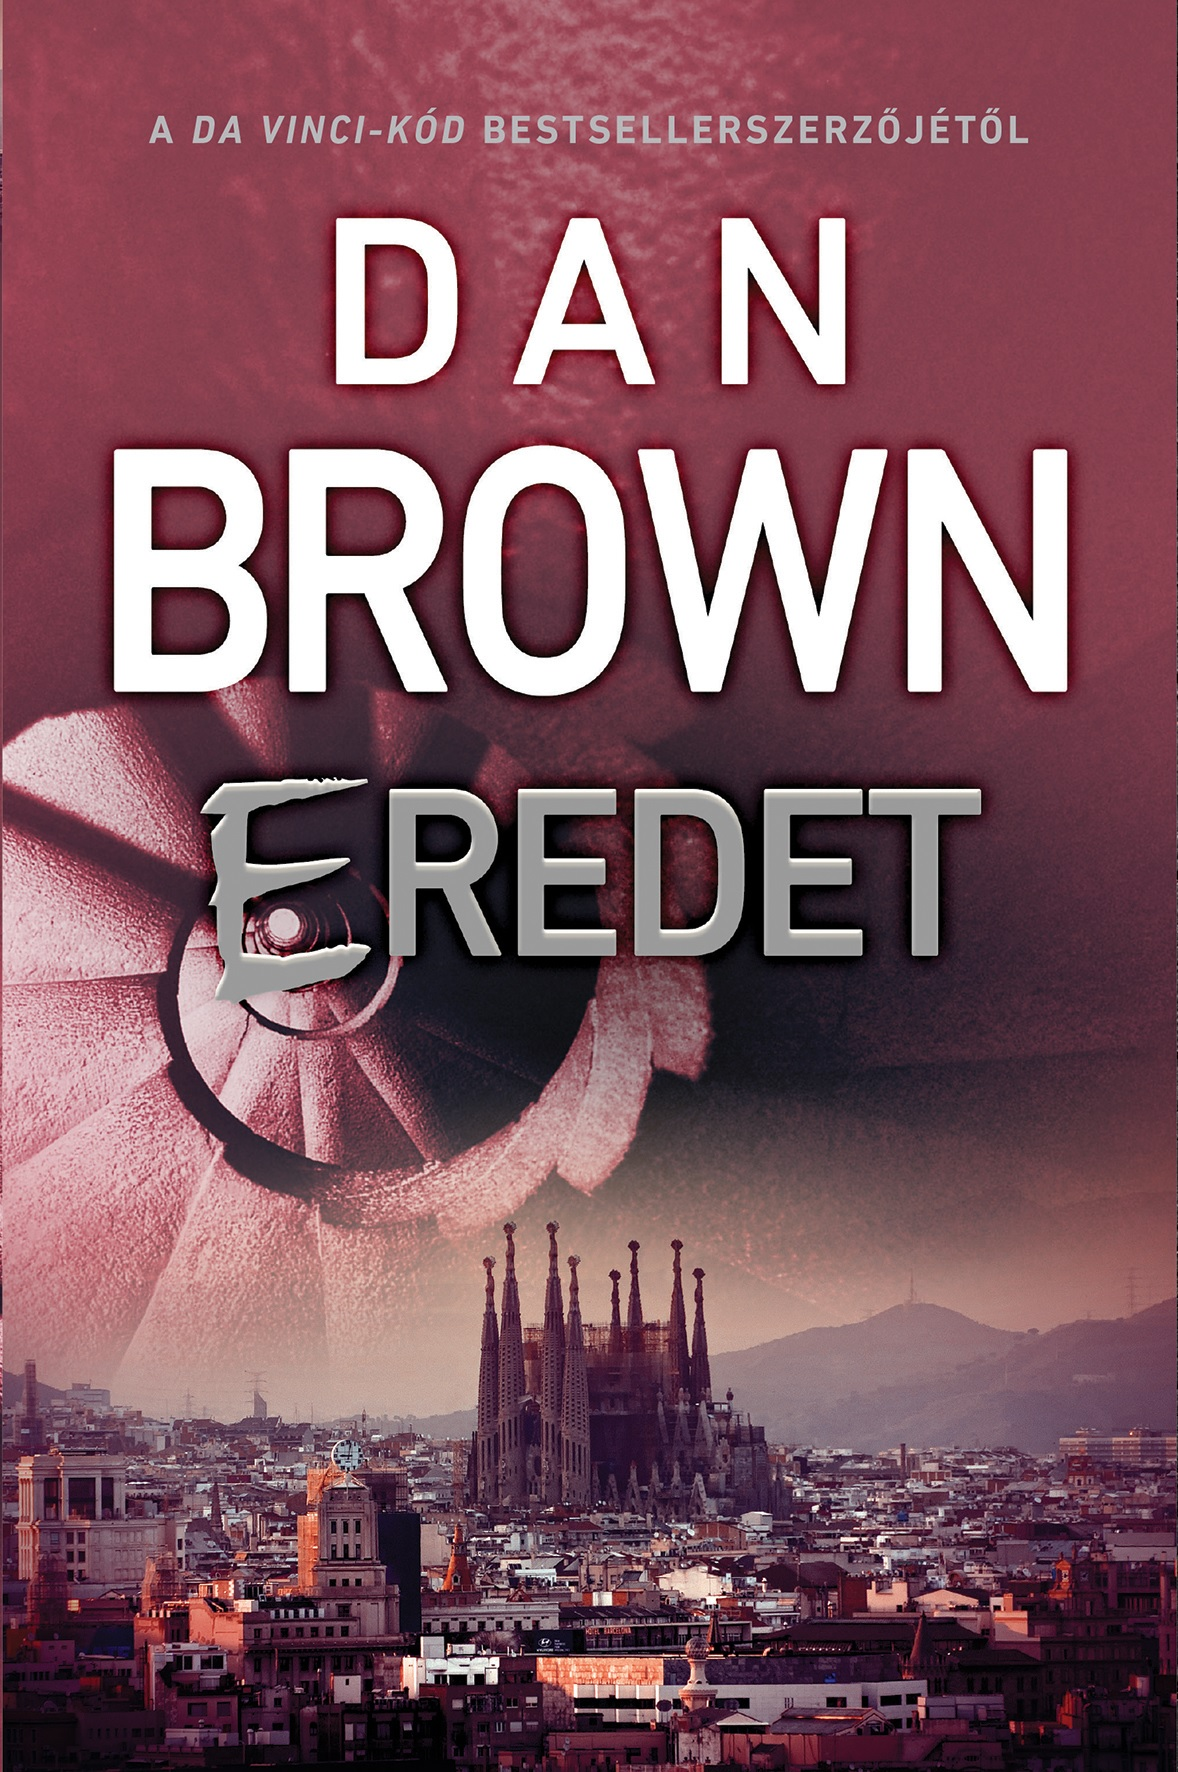 dan_brown_eredet.jpg